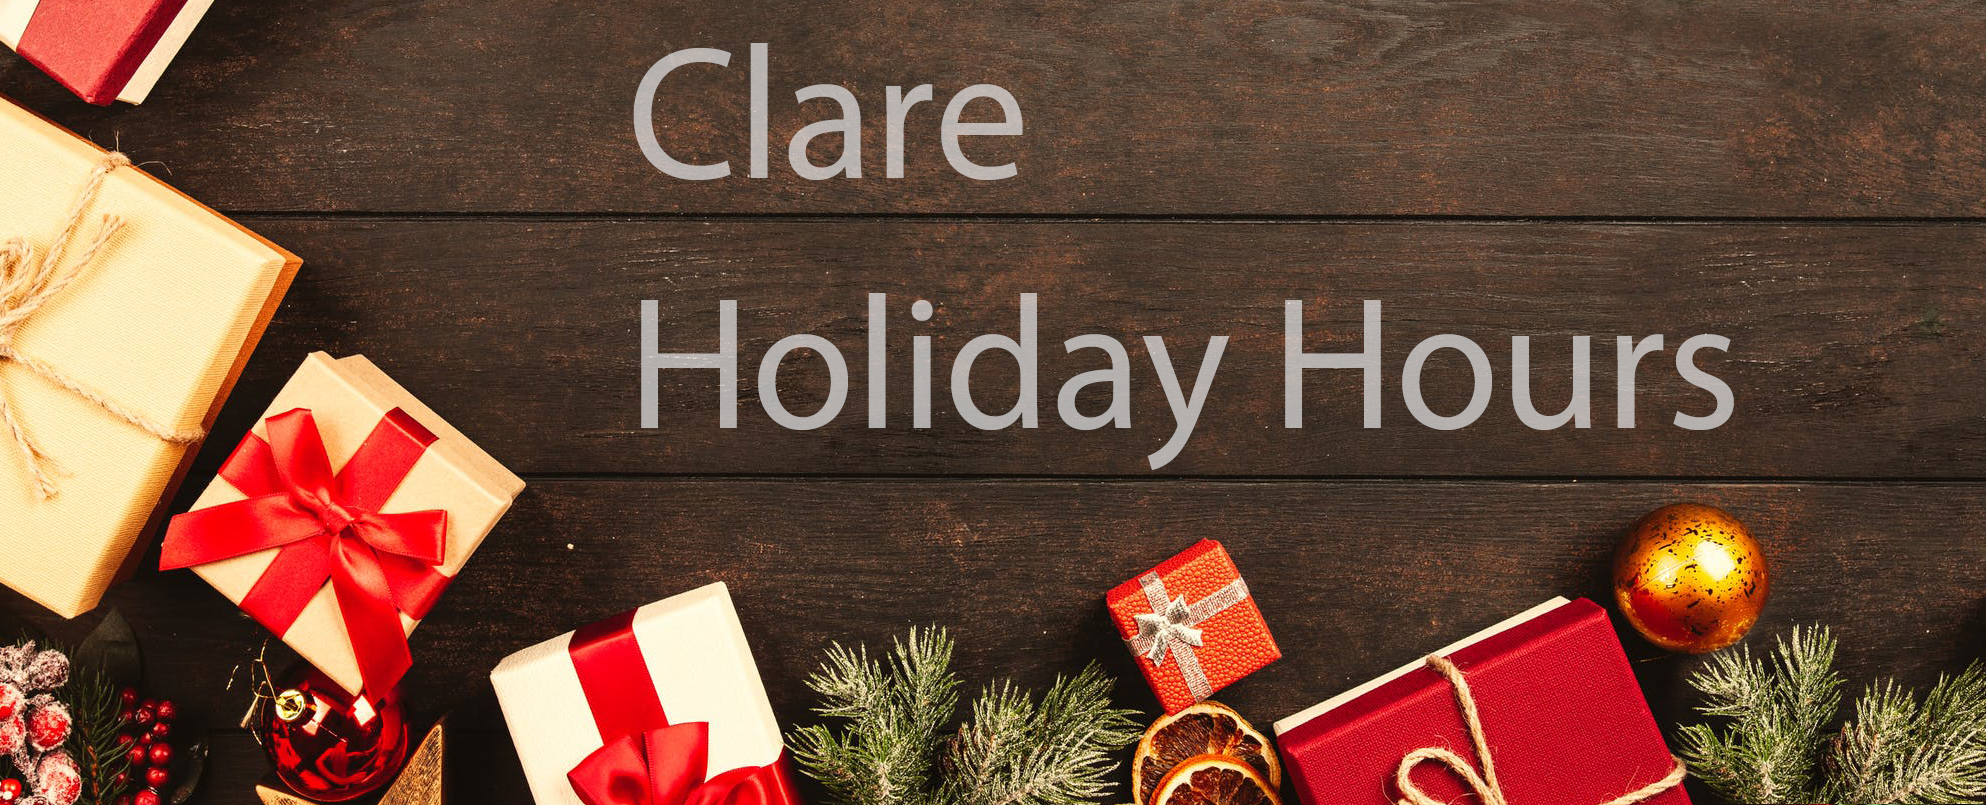 Clare Holiday Hours